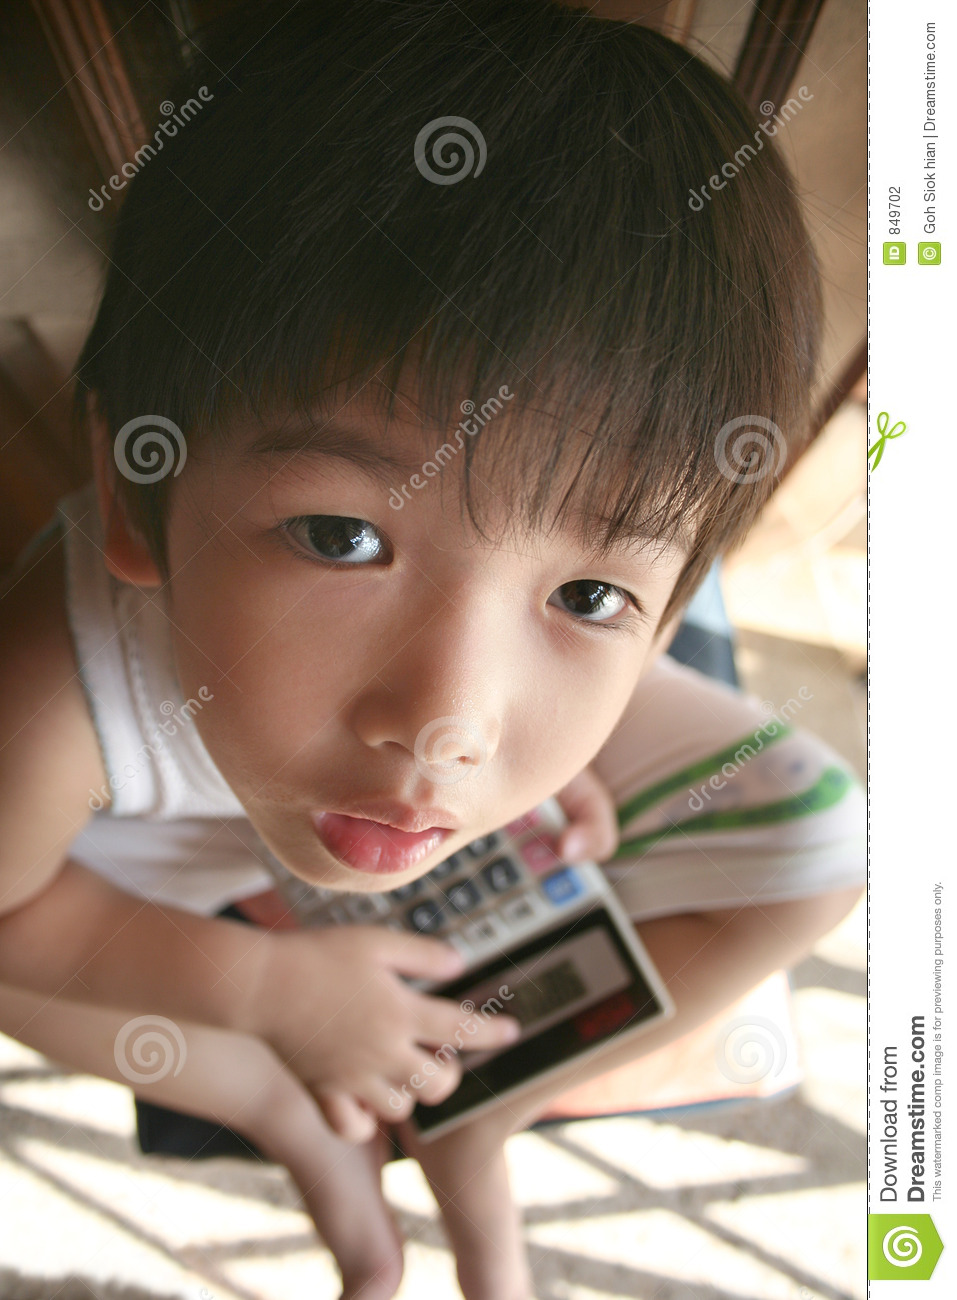 Boy holding calculator looking up